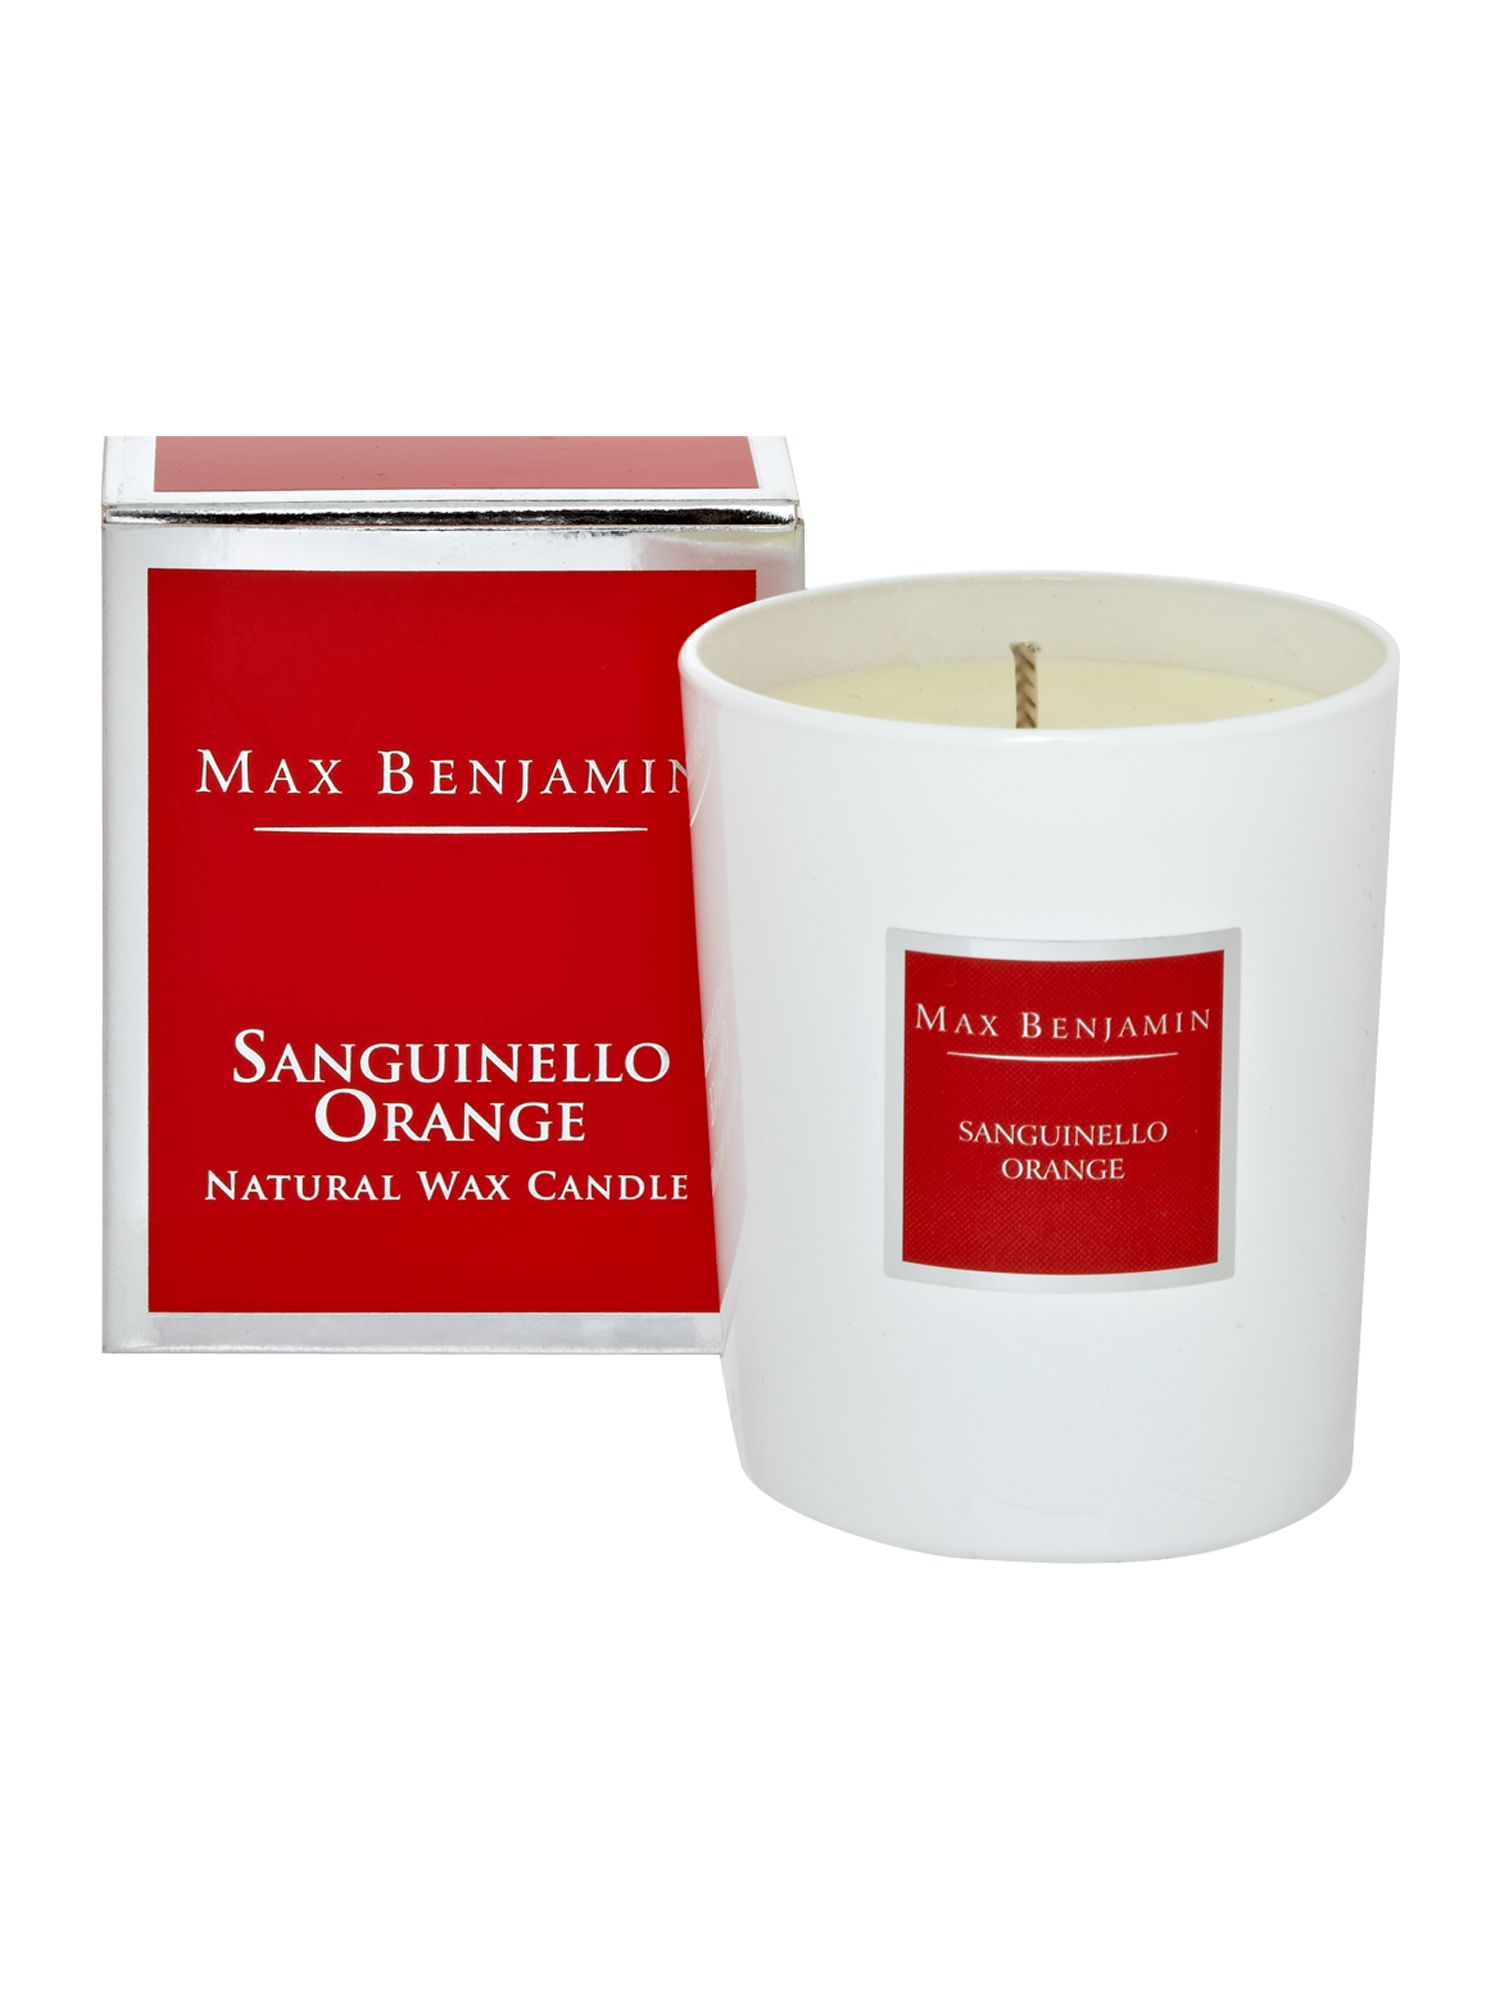 Sanguinello orange candle